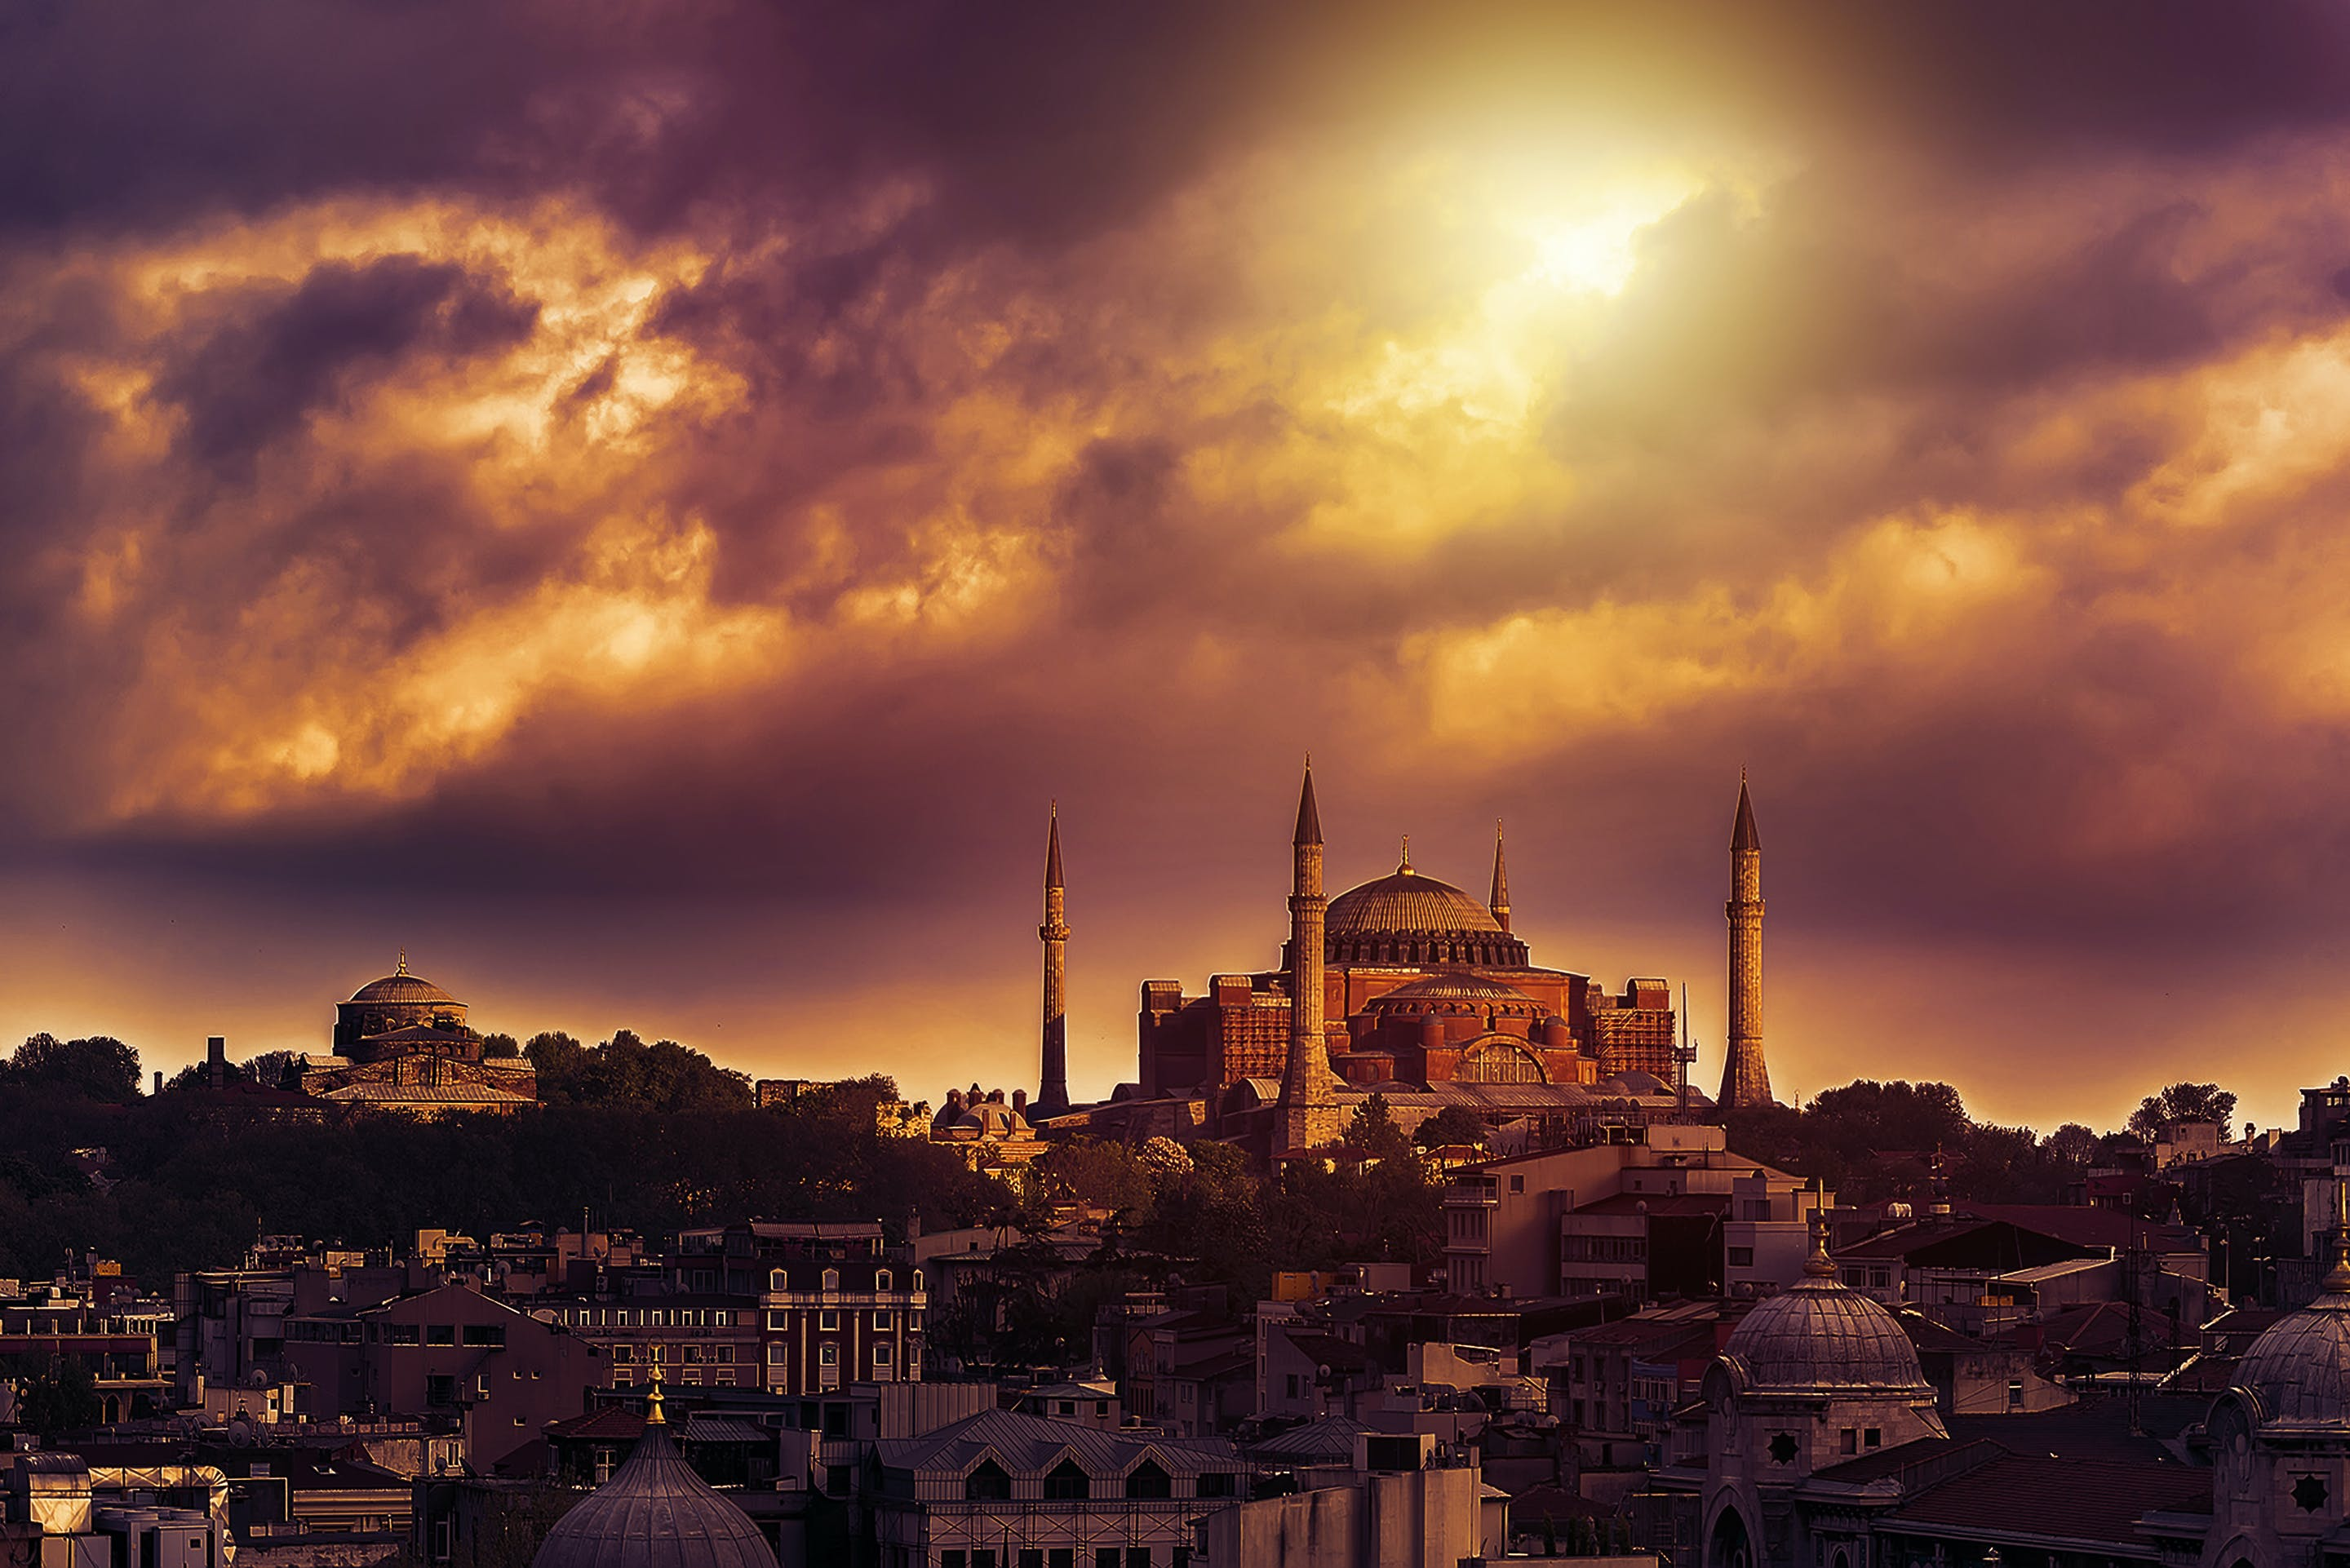 Sunset over the famous Blue Mosque in Instanbul, Turkey.